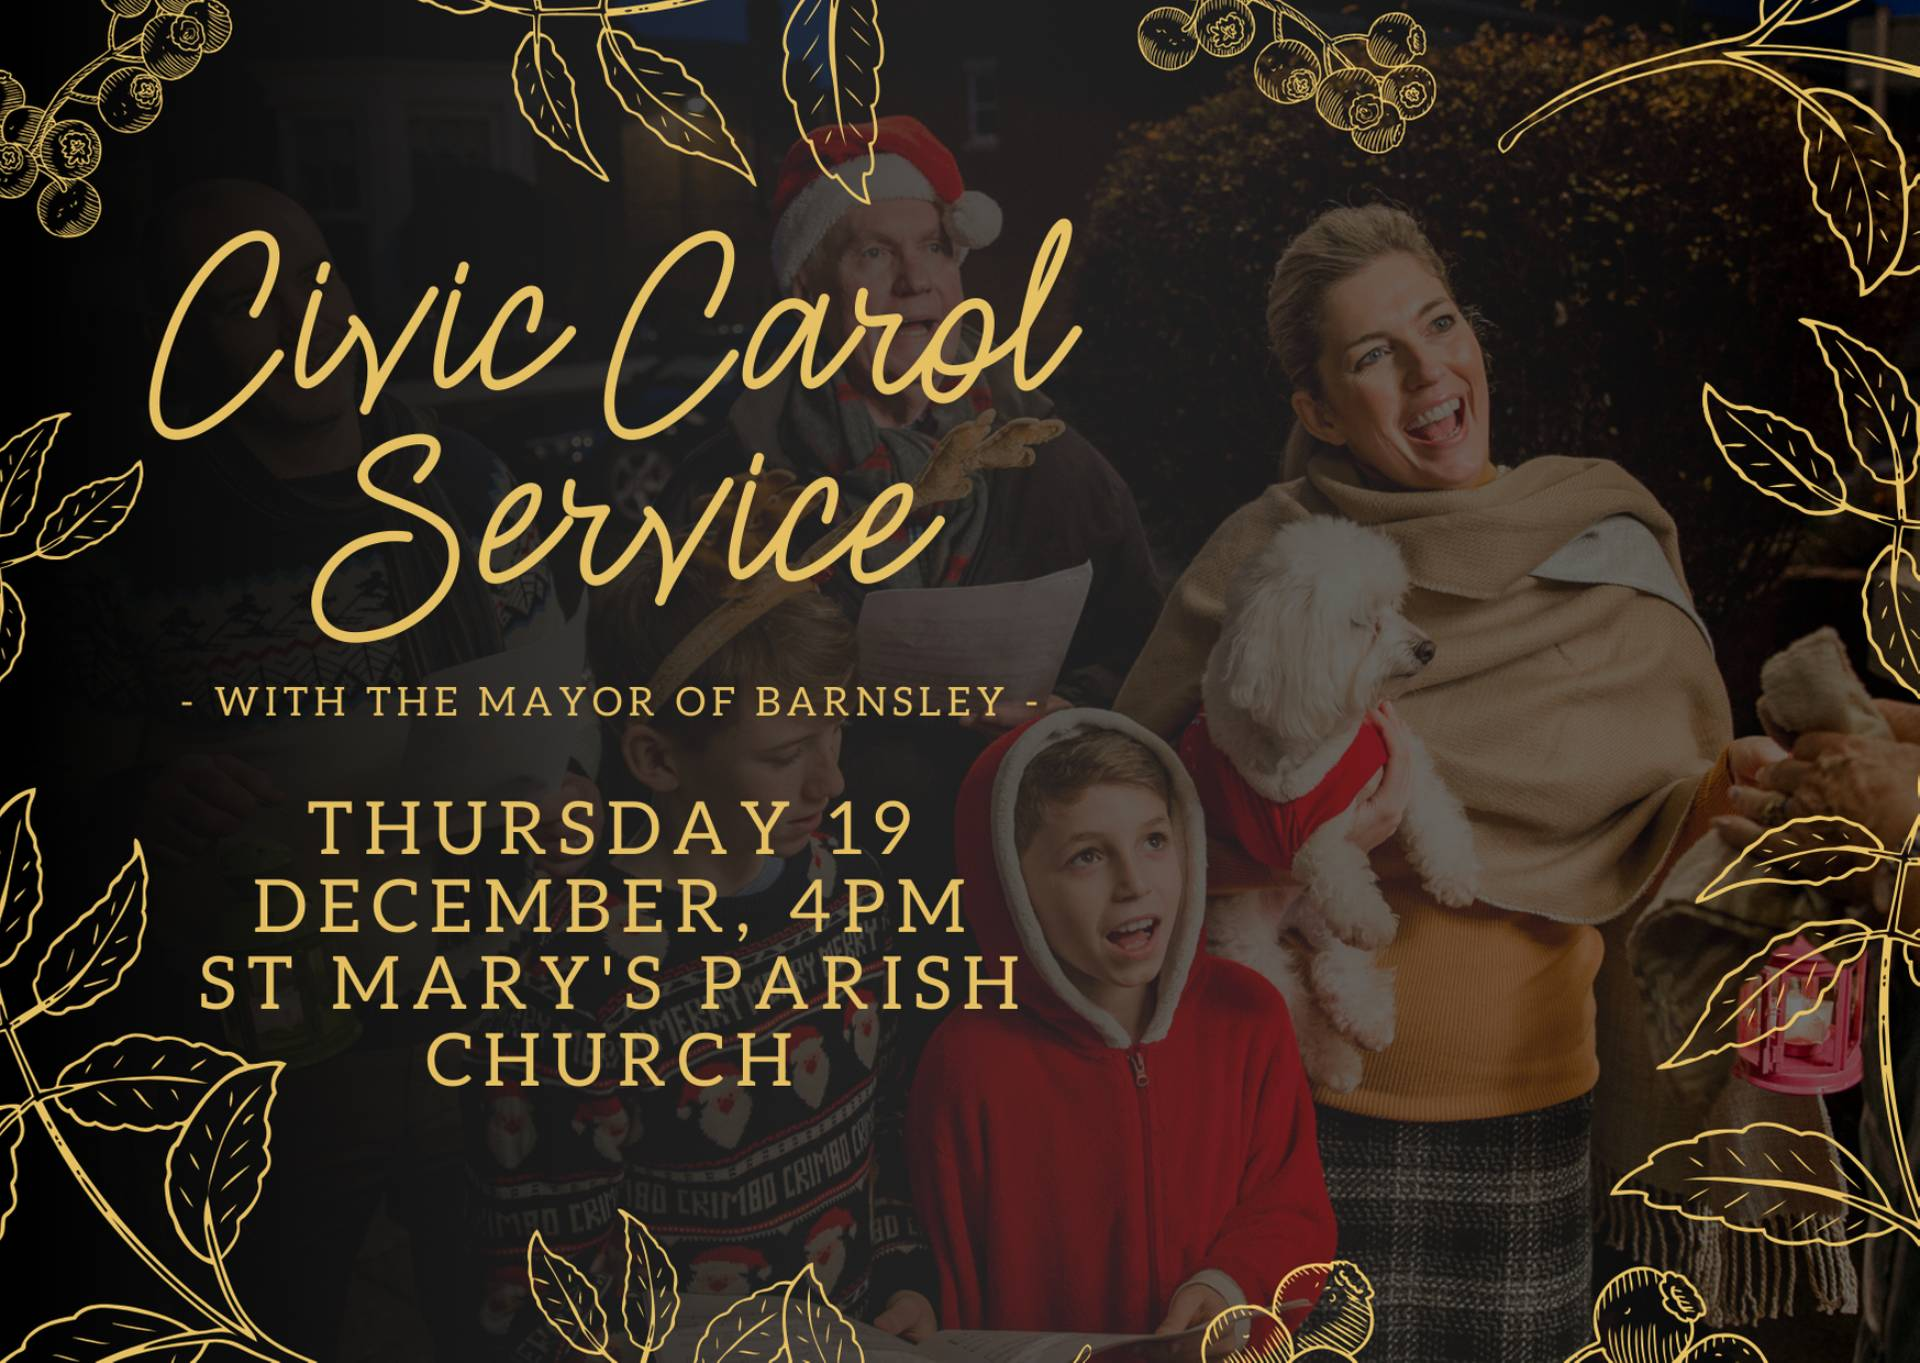 Civic carol service with the Mayor of Barnsley - Thursday 19th December, 4pm, St Marys Parish Church